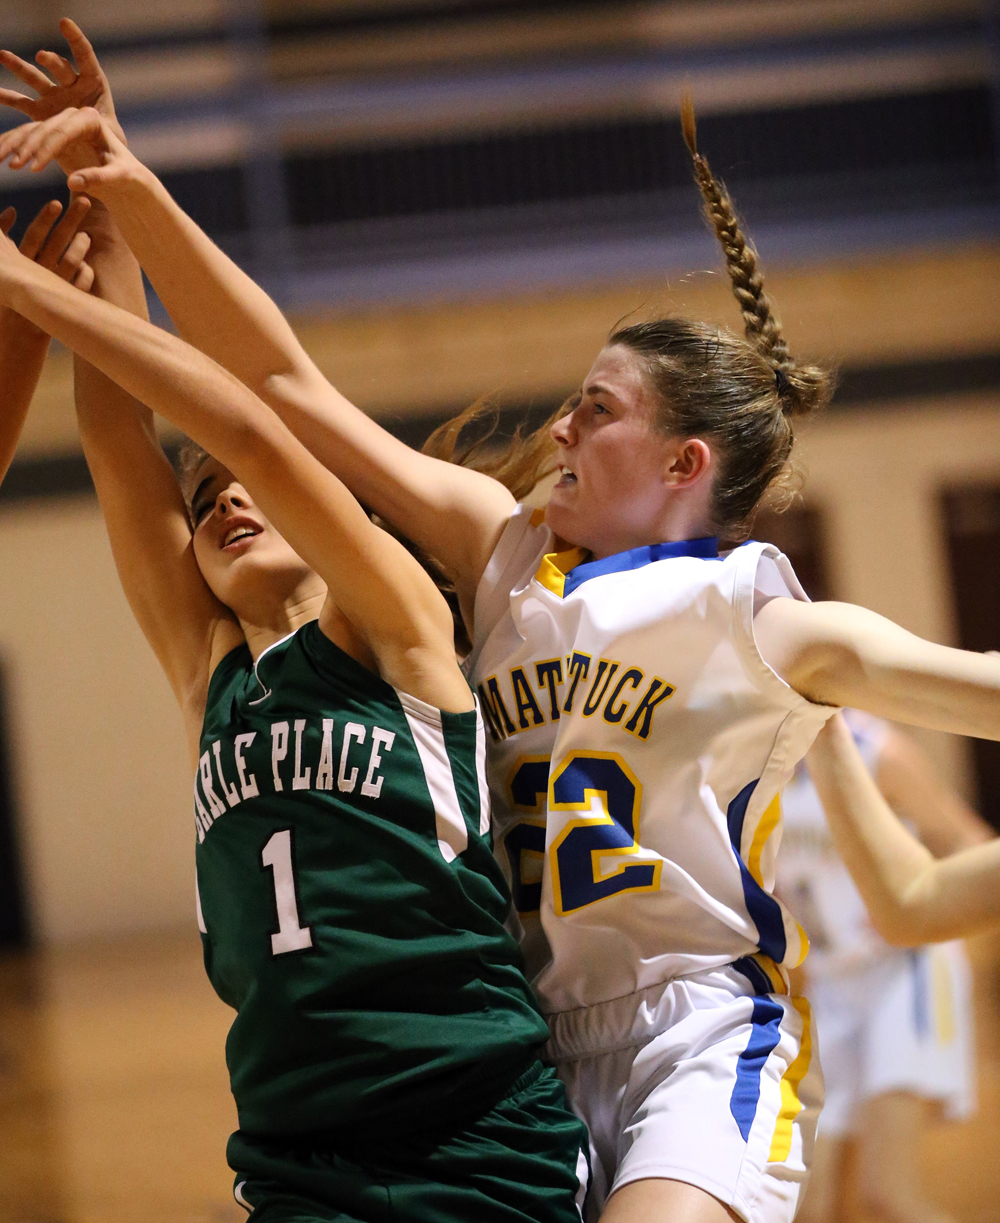 Corinne Reda fights for the ball. (Credit: Garret Meade)